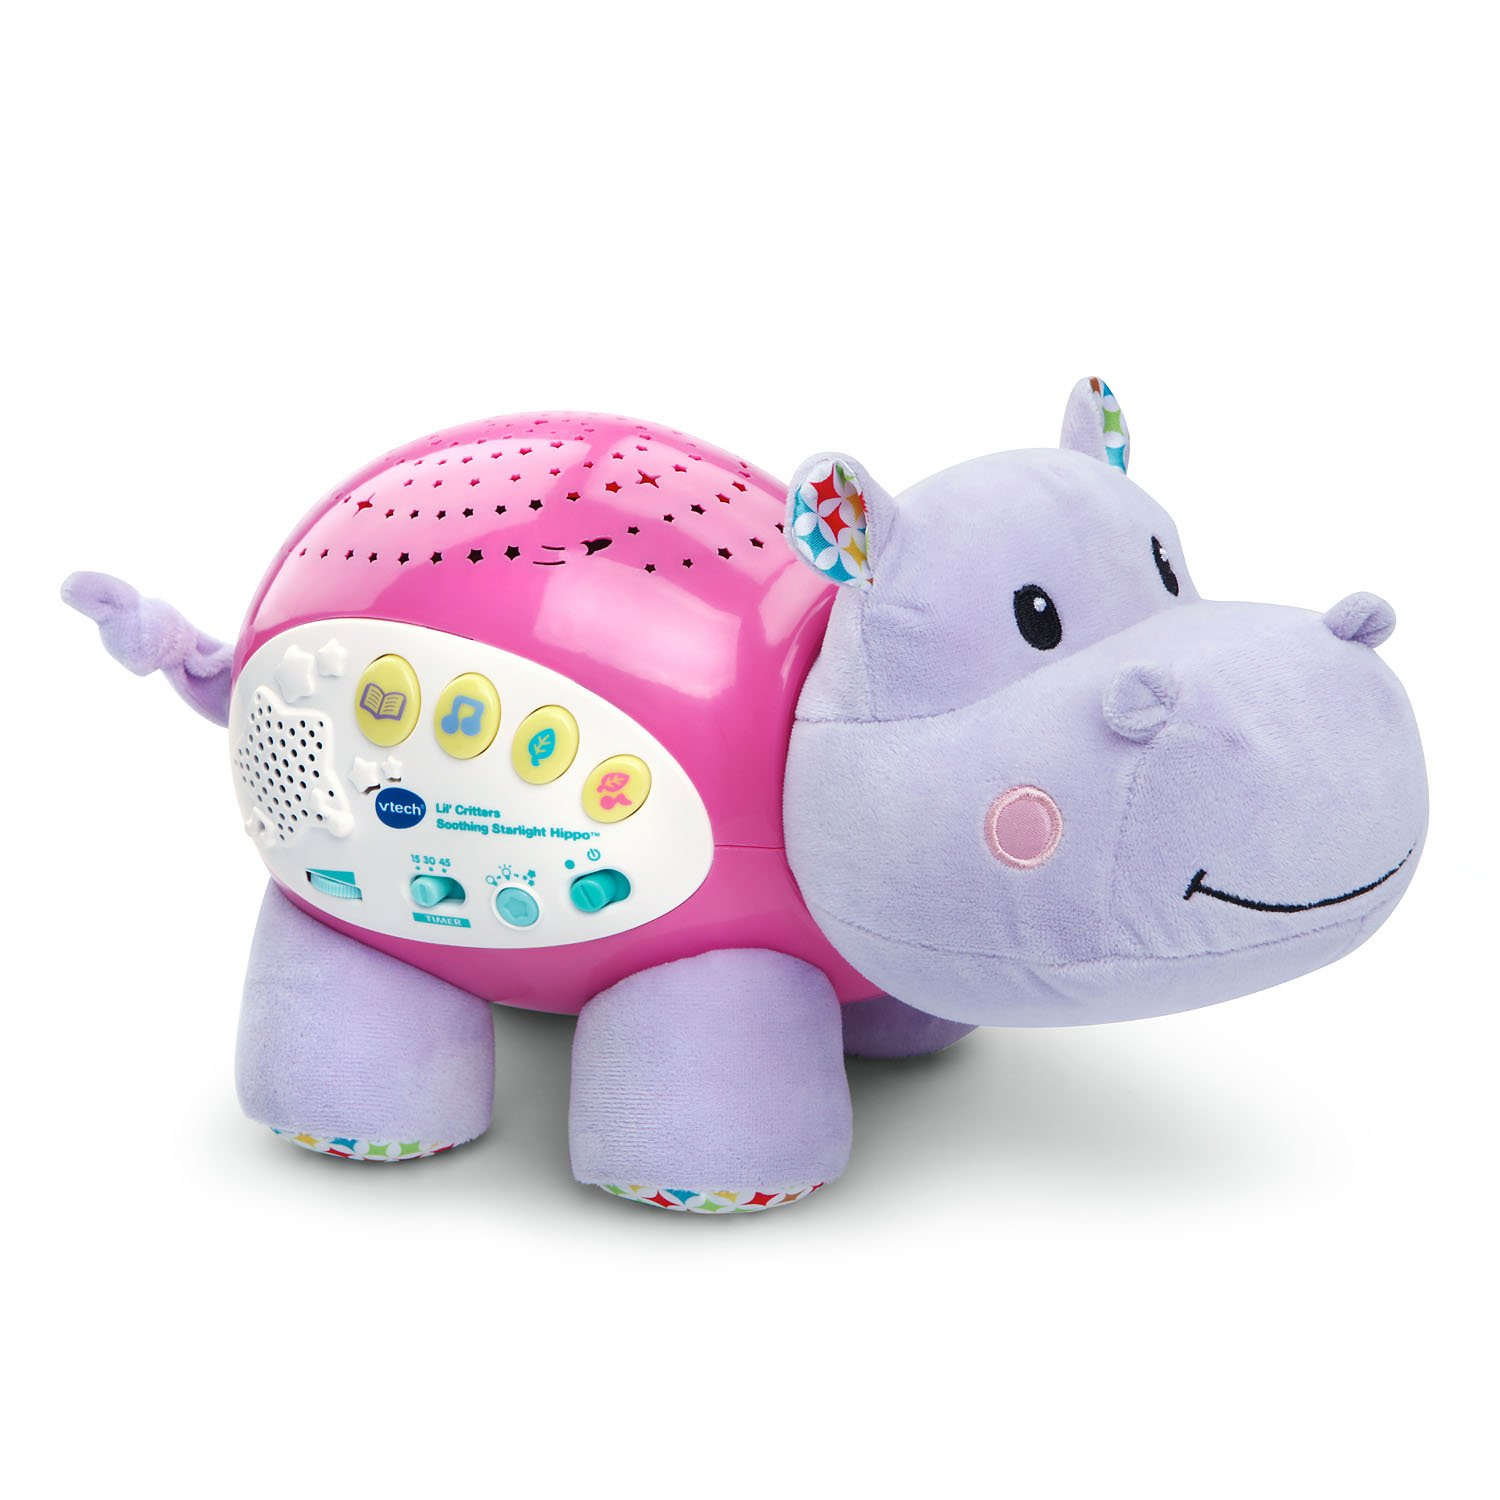 VTech Baby Lil' Critters Soothing Starlight Hippo, Pink (Amazon Exclusive), Great Gift For Kids, Toddlers, Toy for Boys and Girls, Ages Infant, 1, 2